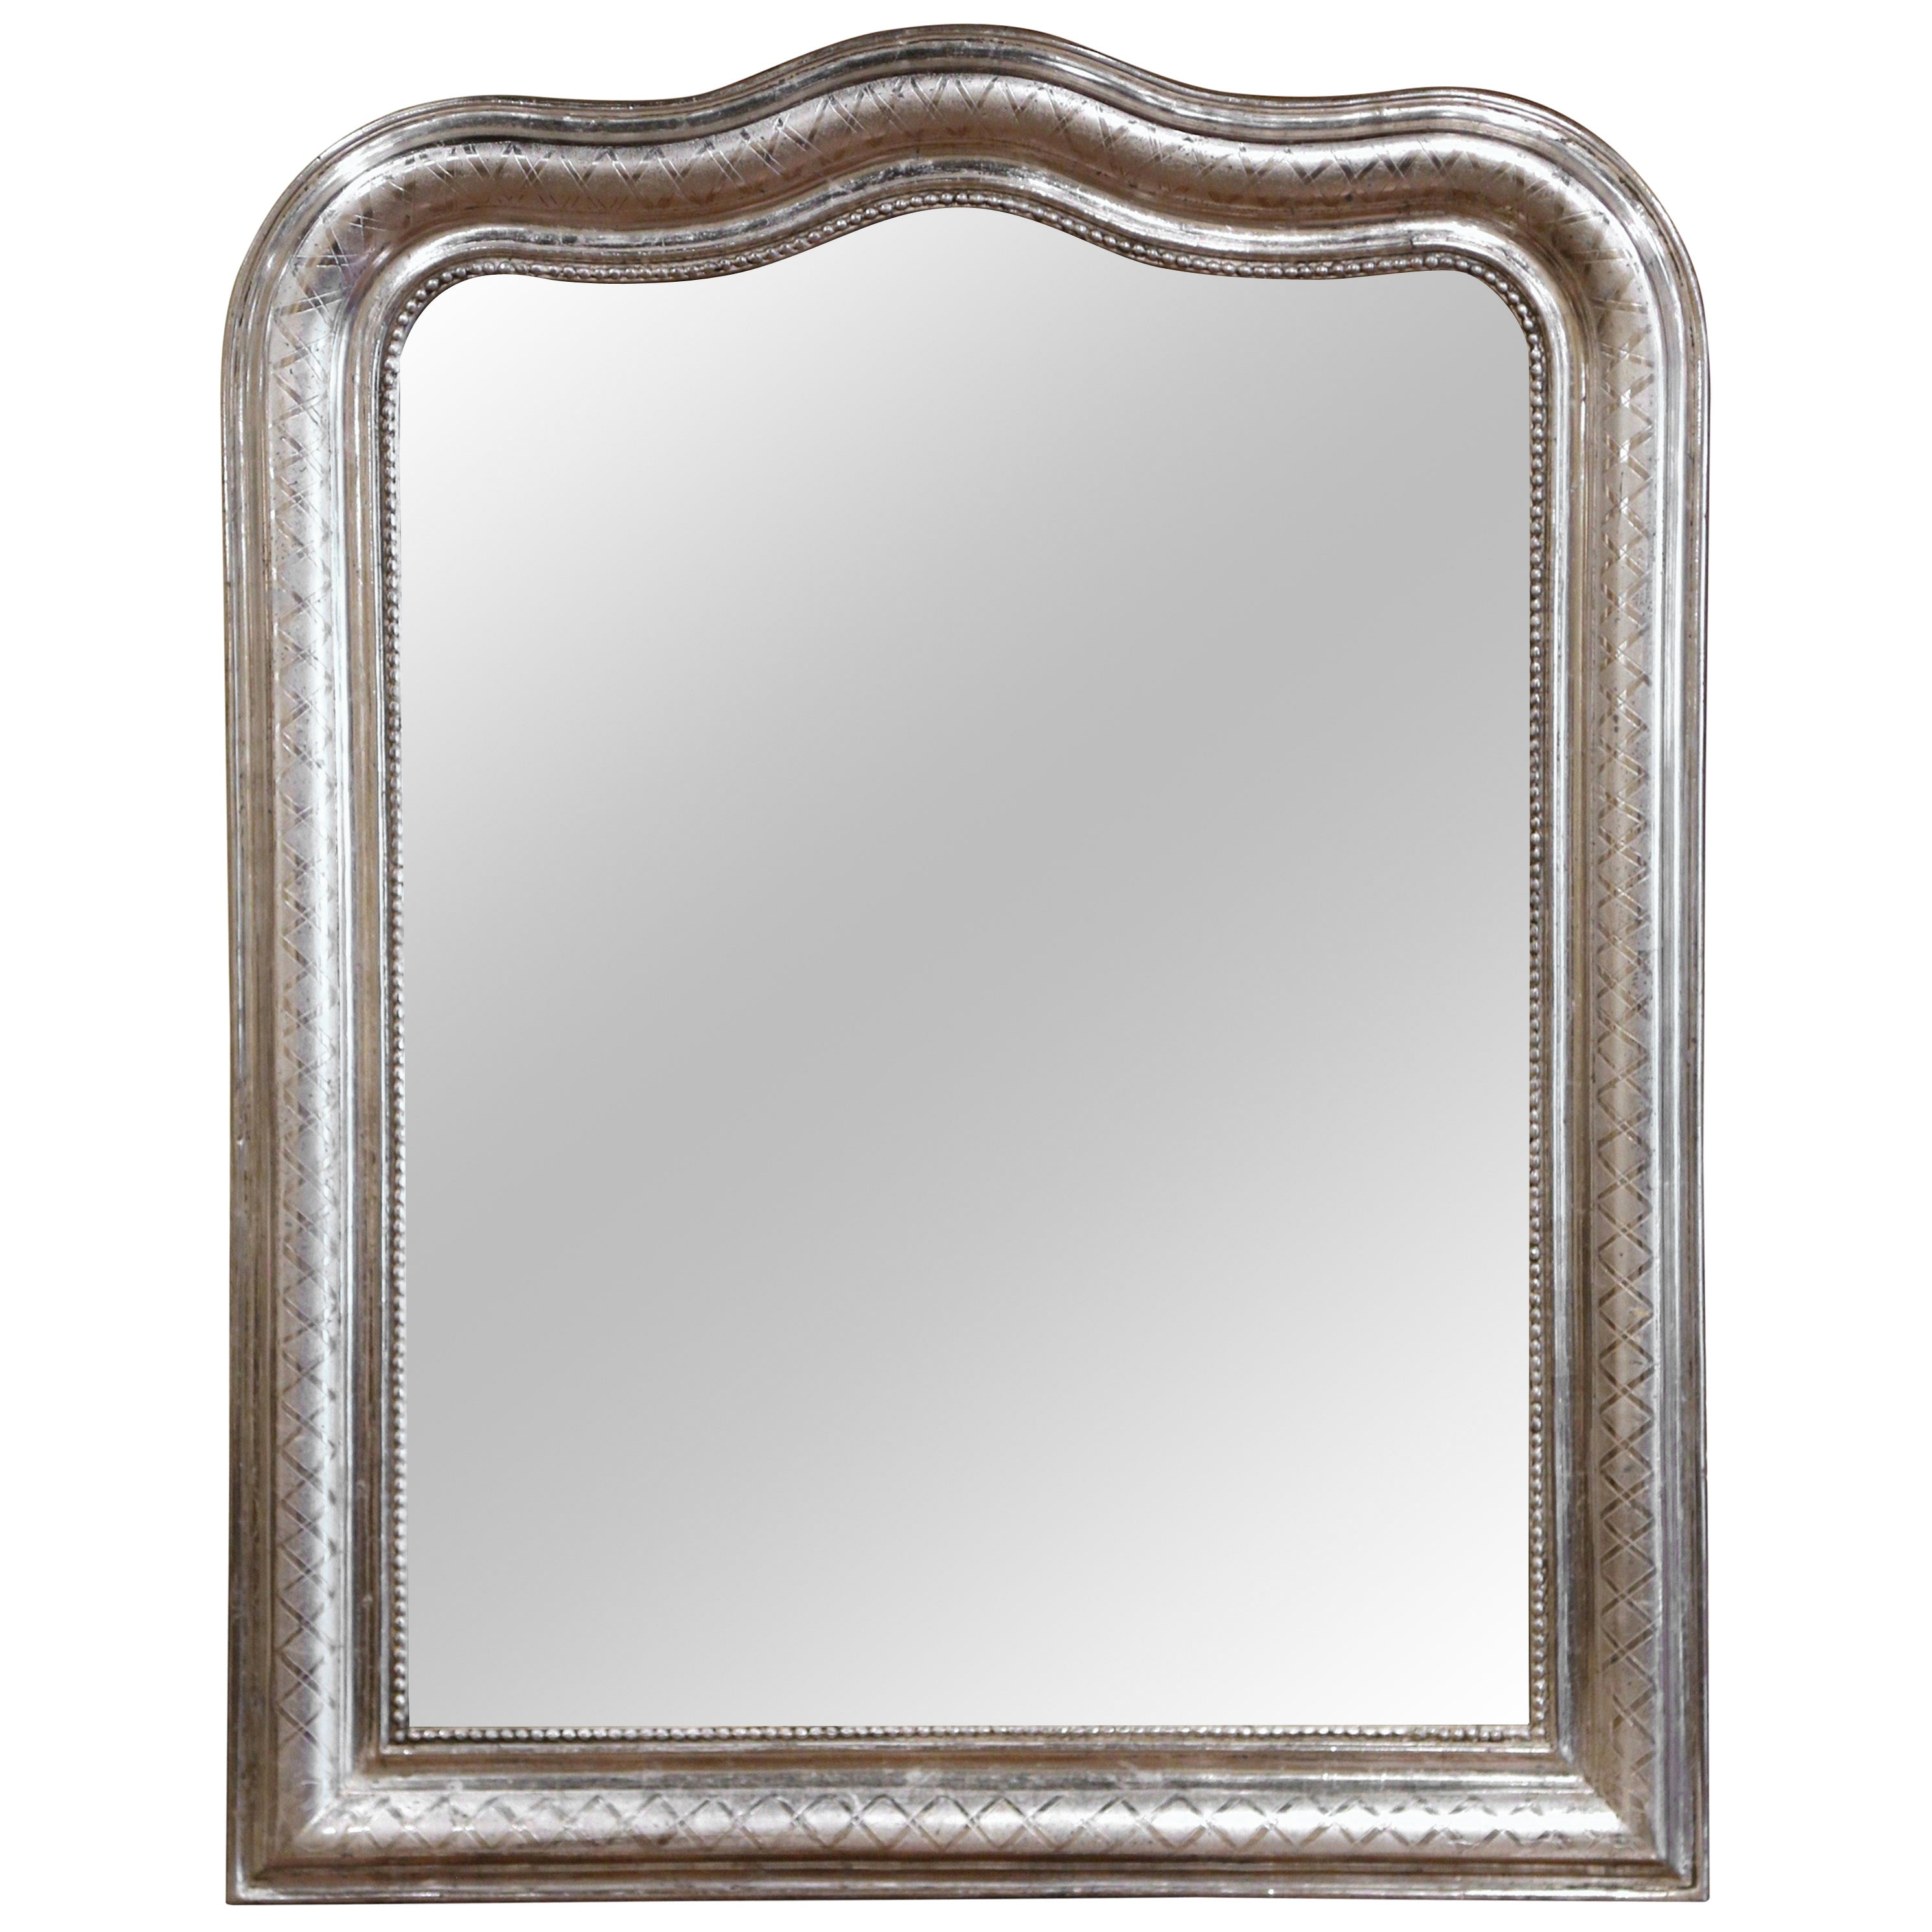 19th Century French Louis Philippe Silver Leaf Mirror with Geometric Motifs